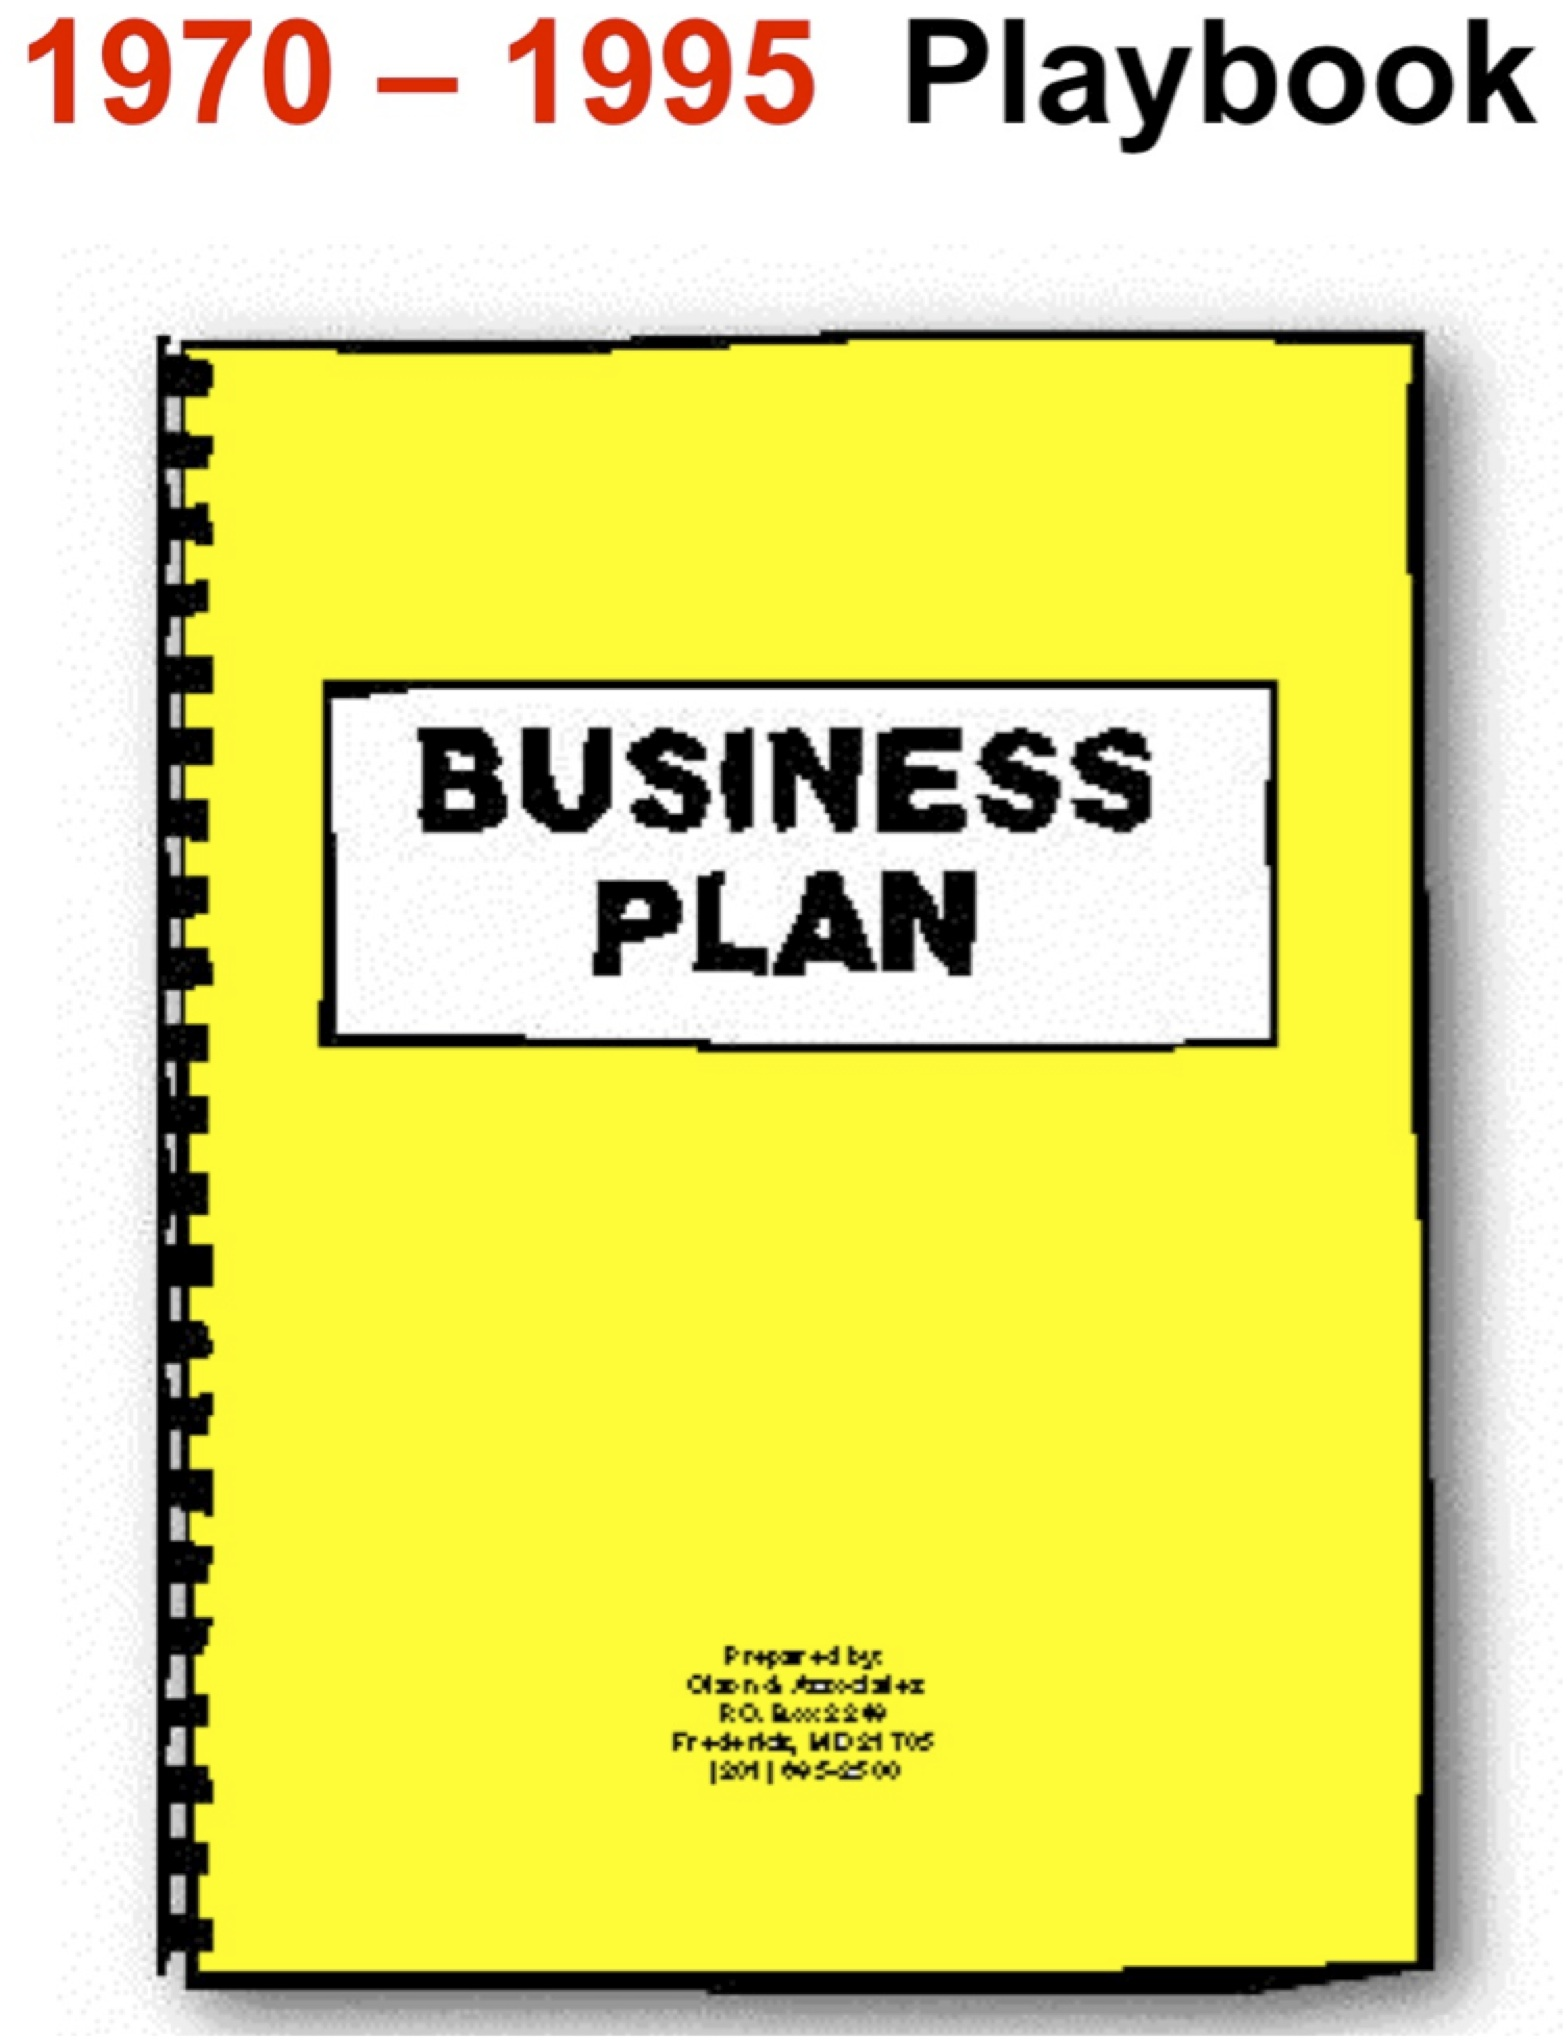 Training consultancy business plan